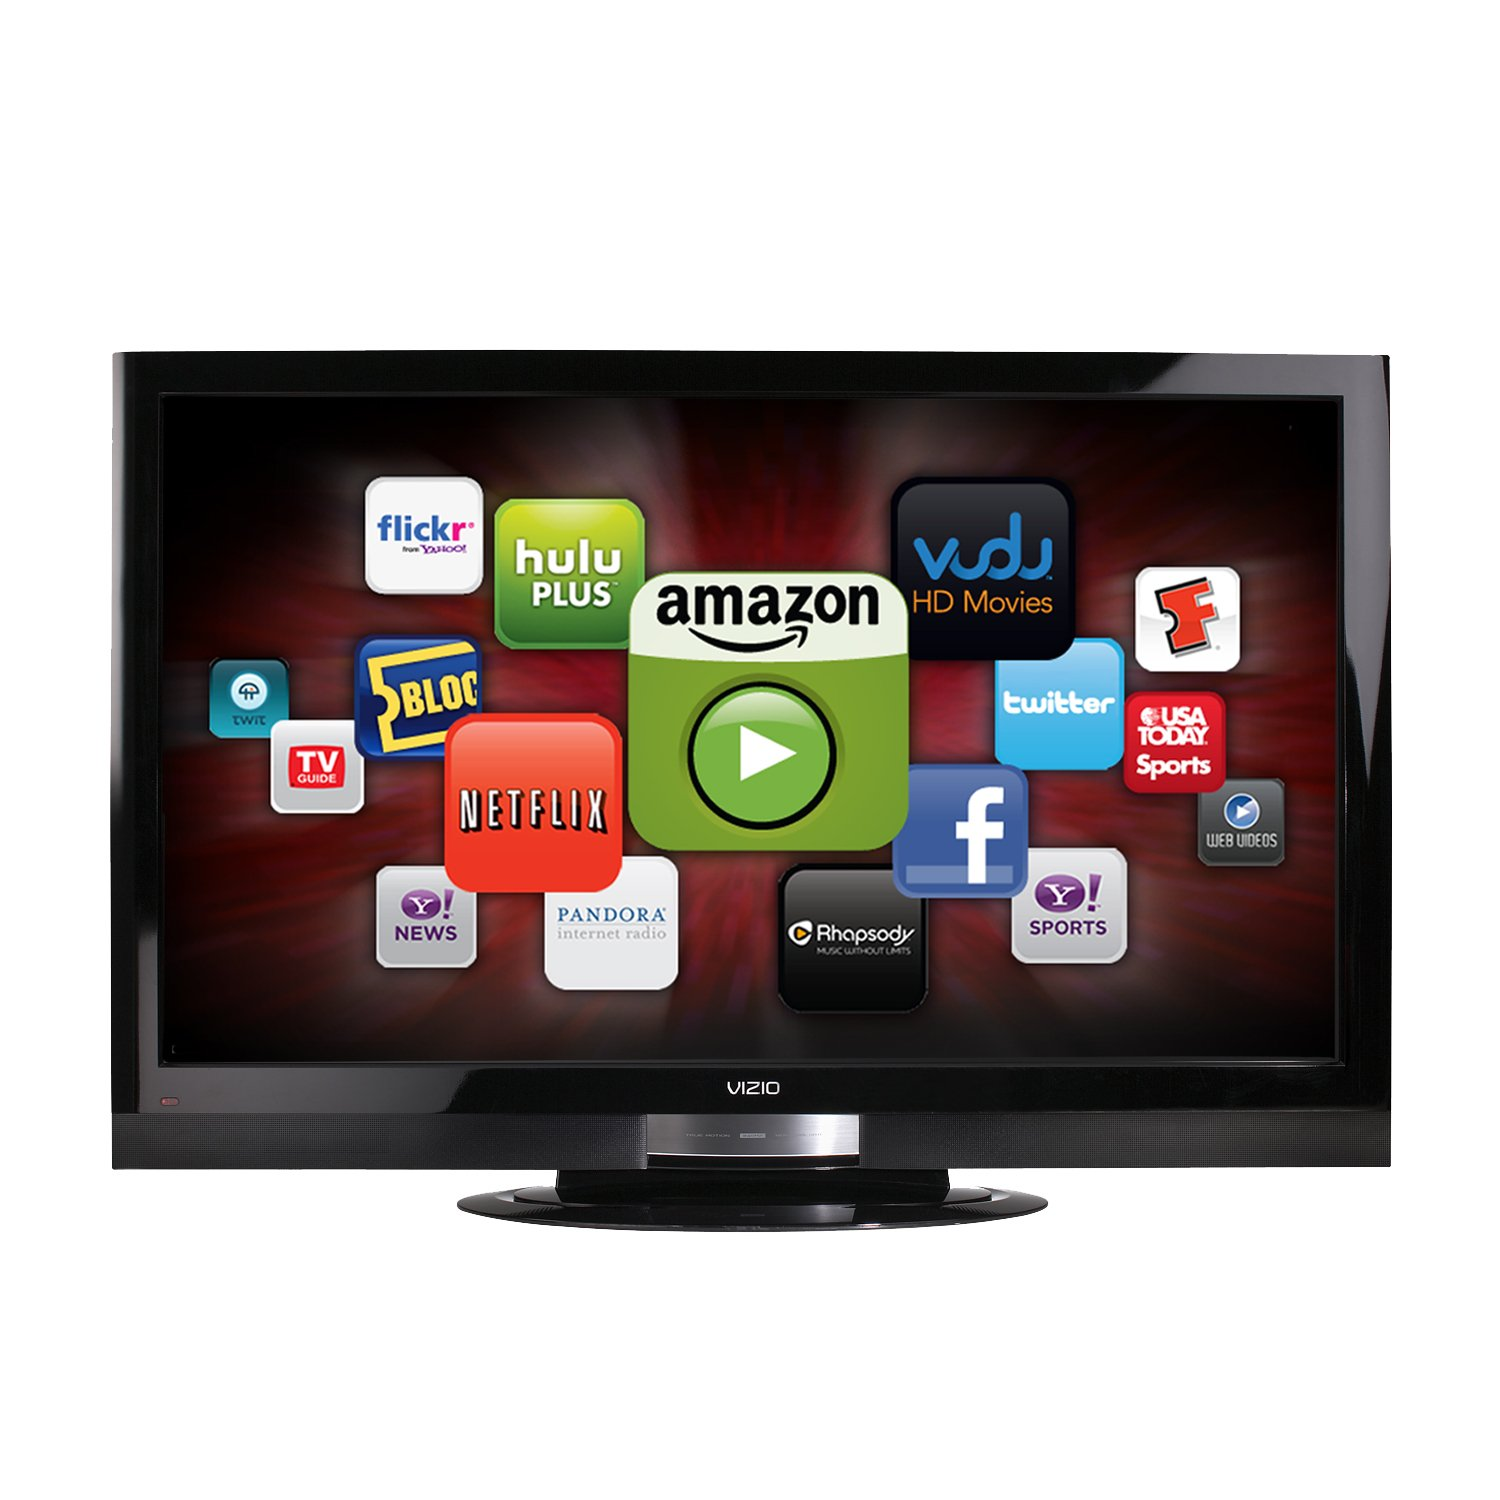 71dcafExxvL._SL1500_ amazon com vizio xvt323sv 32 inch full hd 1080p led lcd hdtv with vizio tv wiring diagram at bayanpartner.co